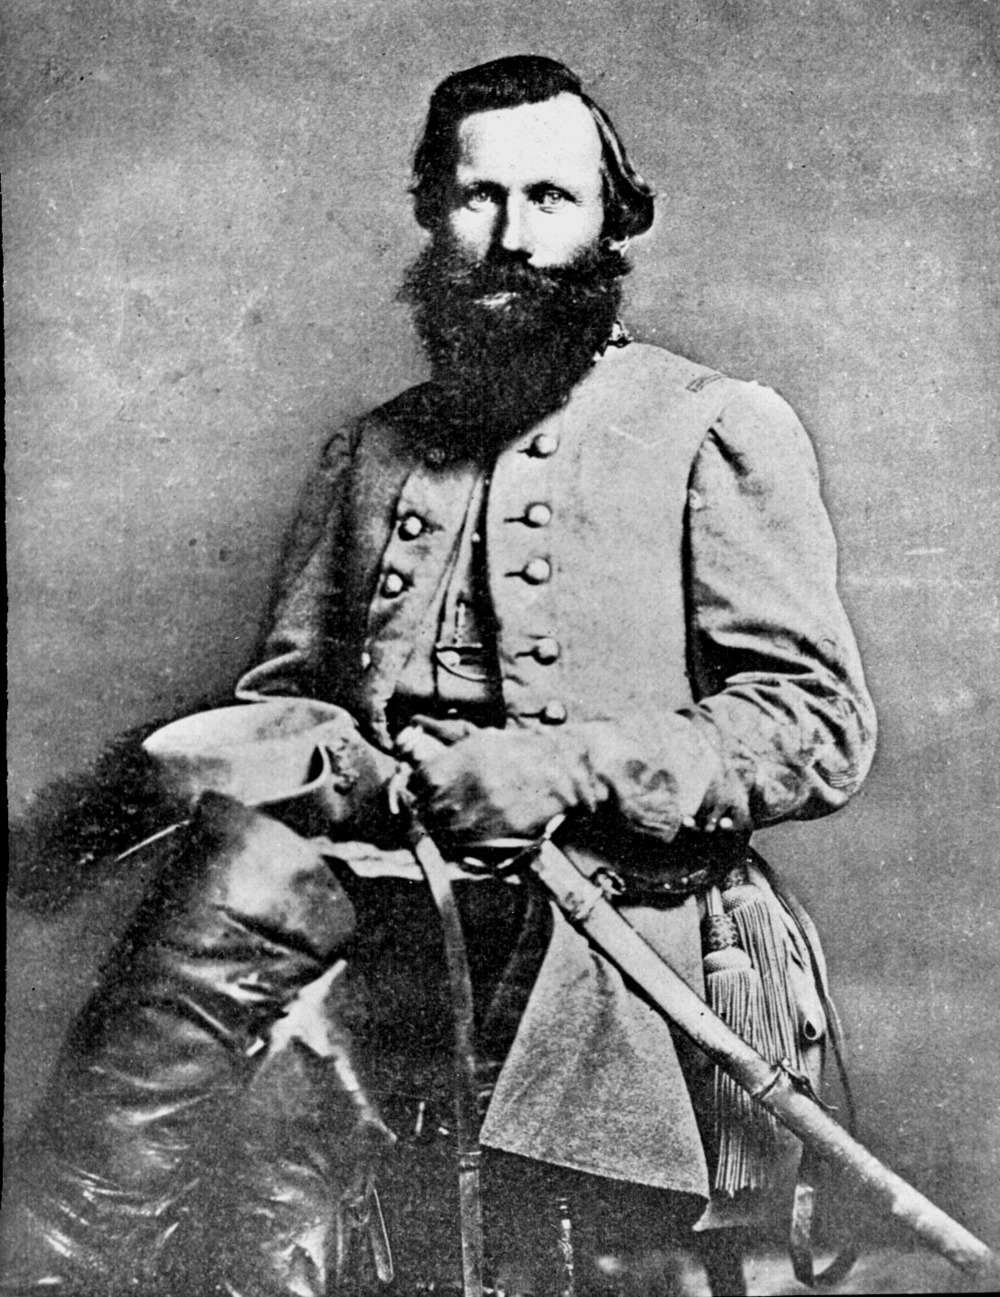 James Ewell Brown (Jeb) Stuart commanded the mounted wing of the Confederate Army of Northern Virginia. A brilliant commander, his performance during the Gettysburg campaign remains a rare blemish on his record.